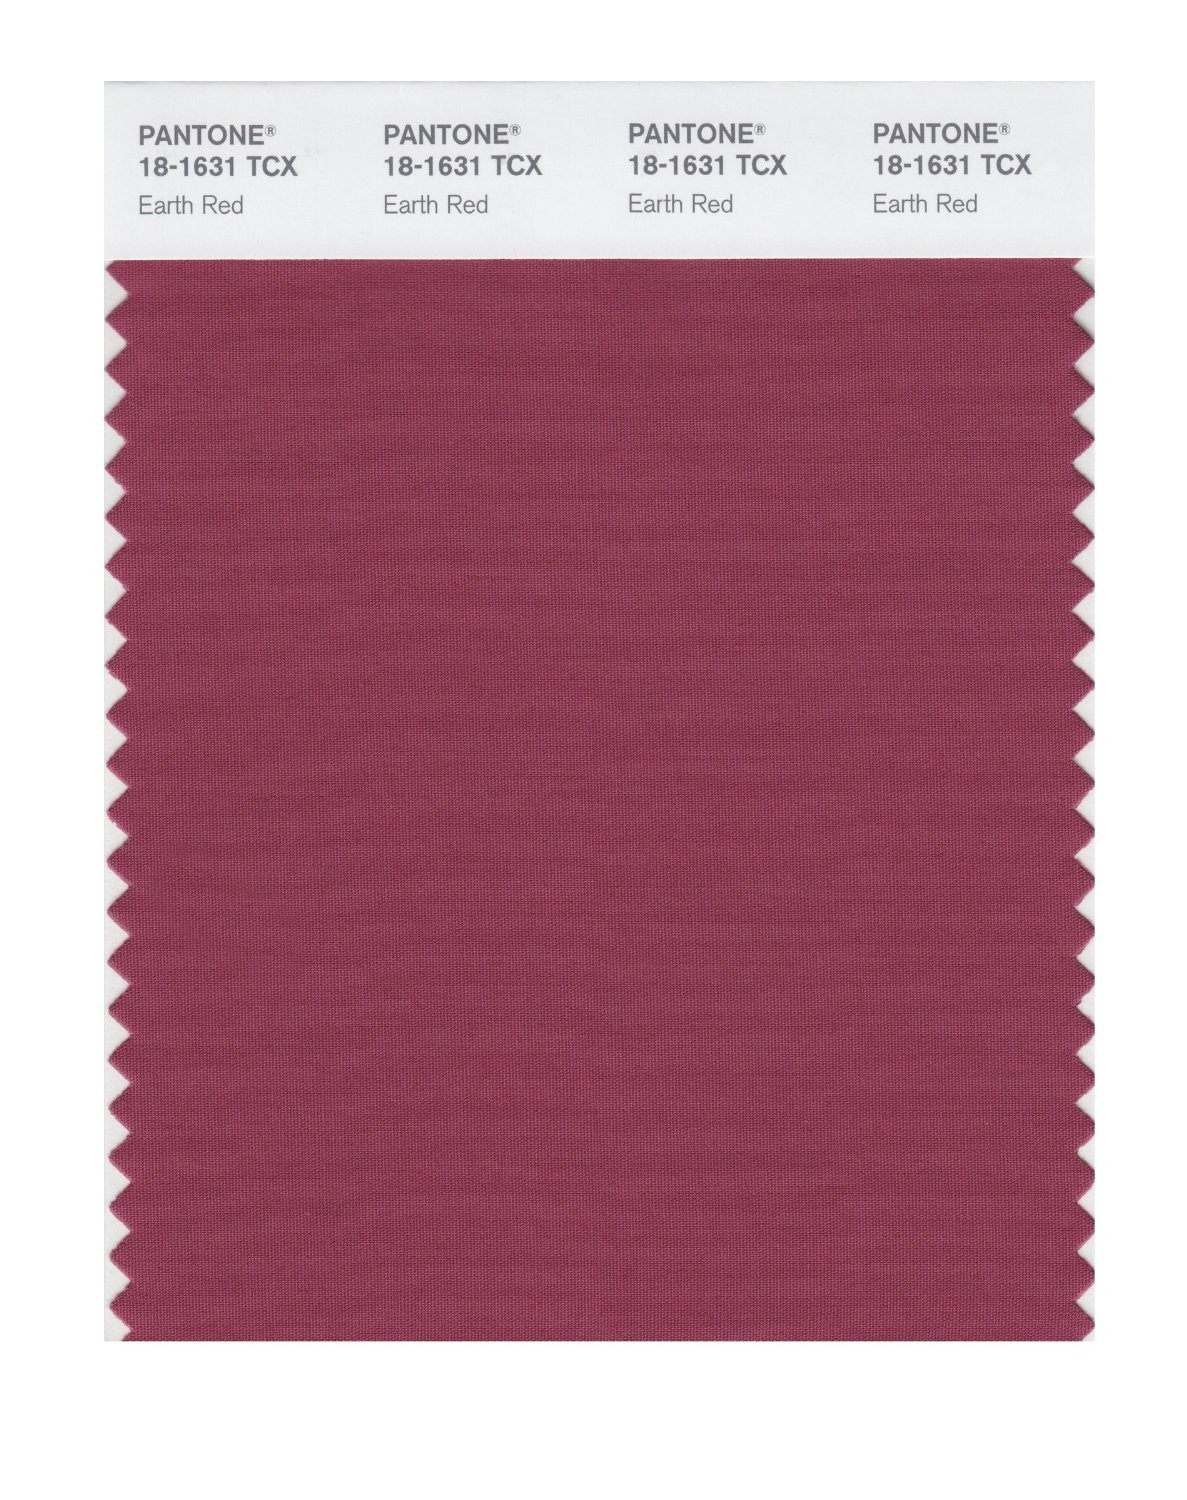 Pantone 18-1631 TCX Swatch Card Earth Red